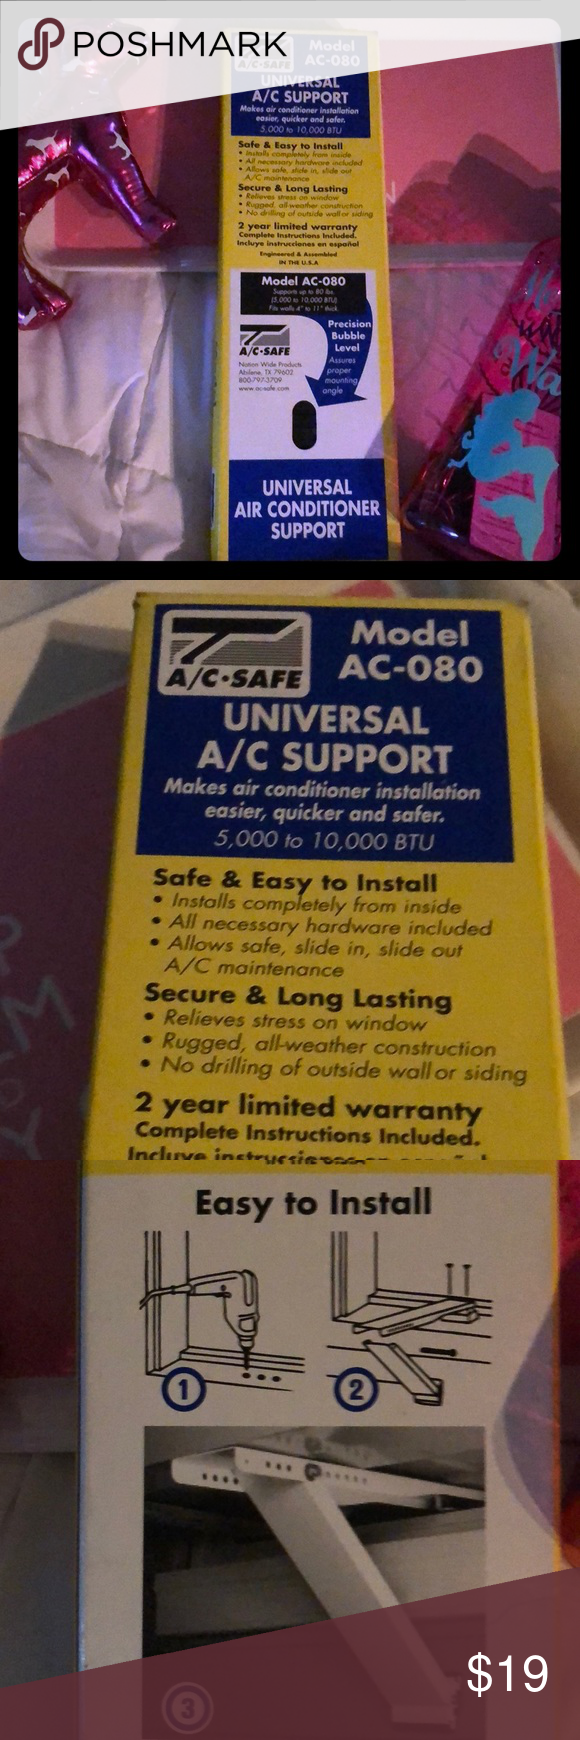 UNIVERSAL AC SUPPORT NEW Make air condition installation